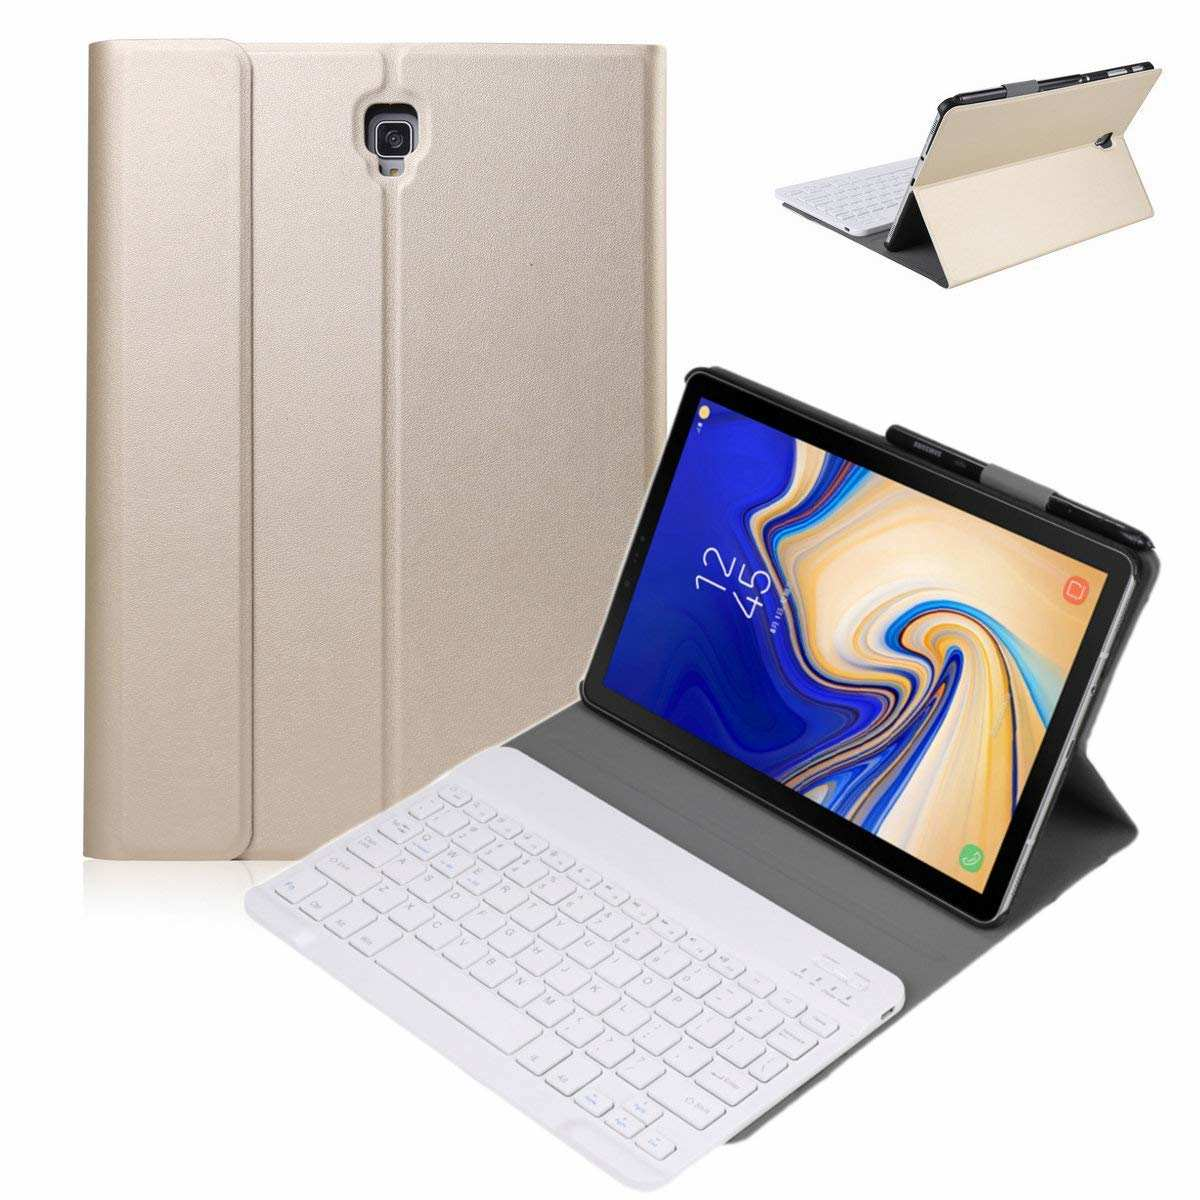 wholesale For Samsung Galaxy Tab S5e 10.5 SM-T720/T725 Detachable Bluetooth Keyboard Leather Case - Gold